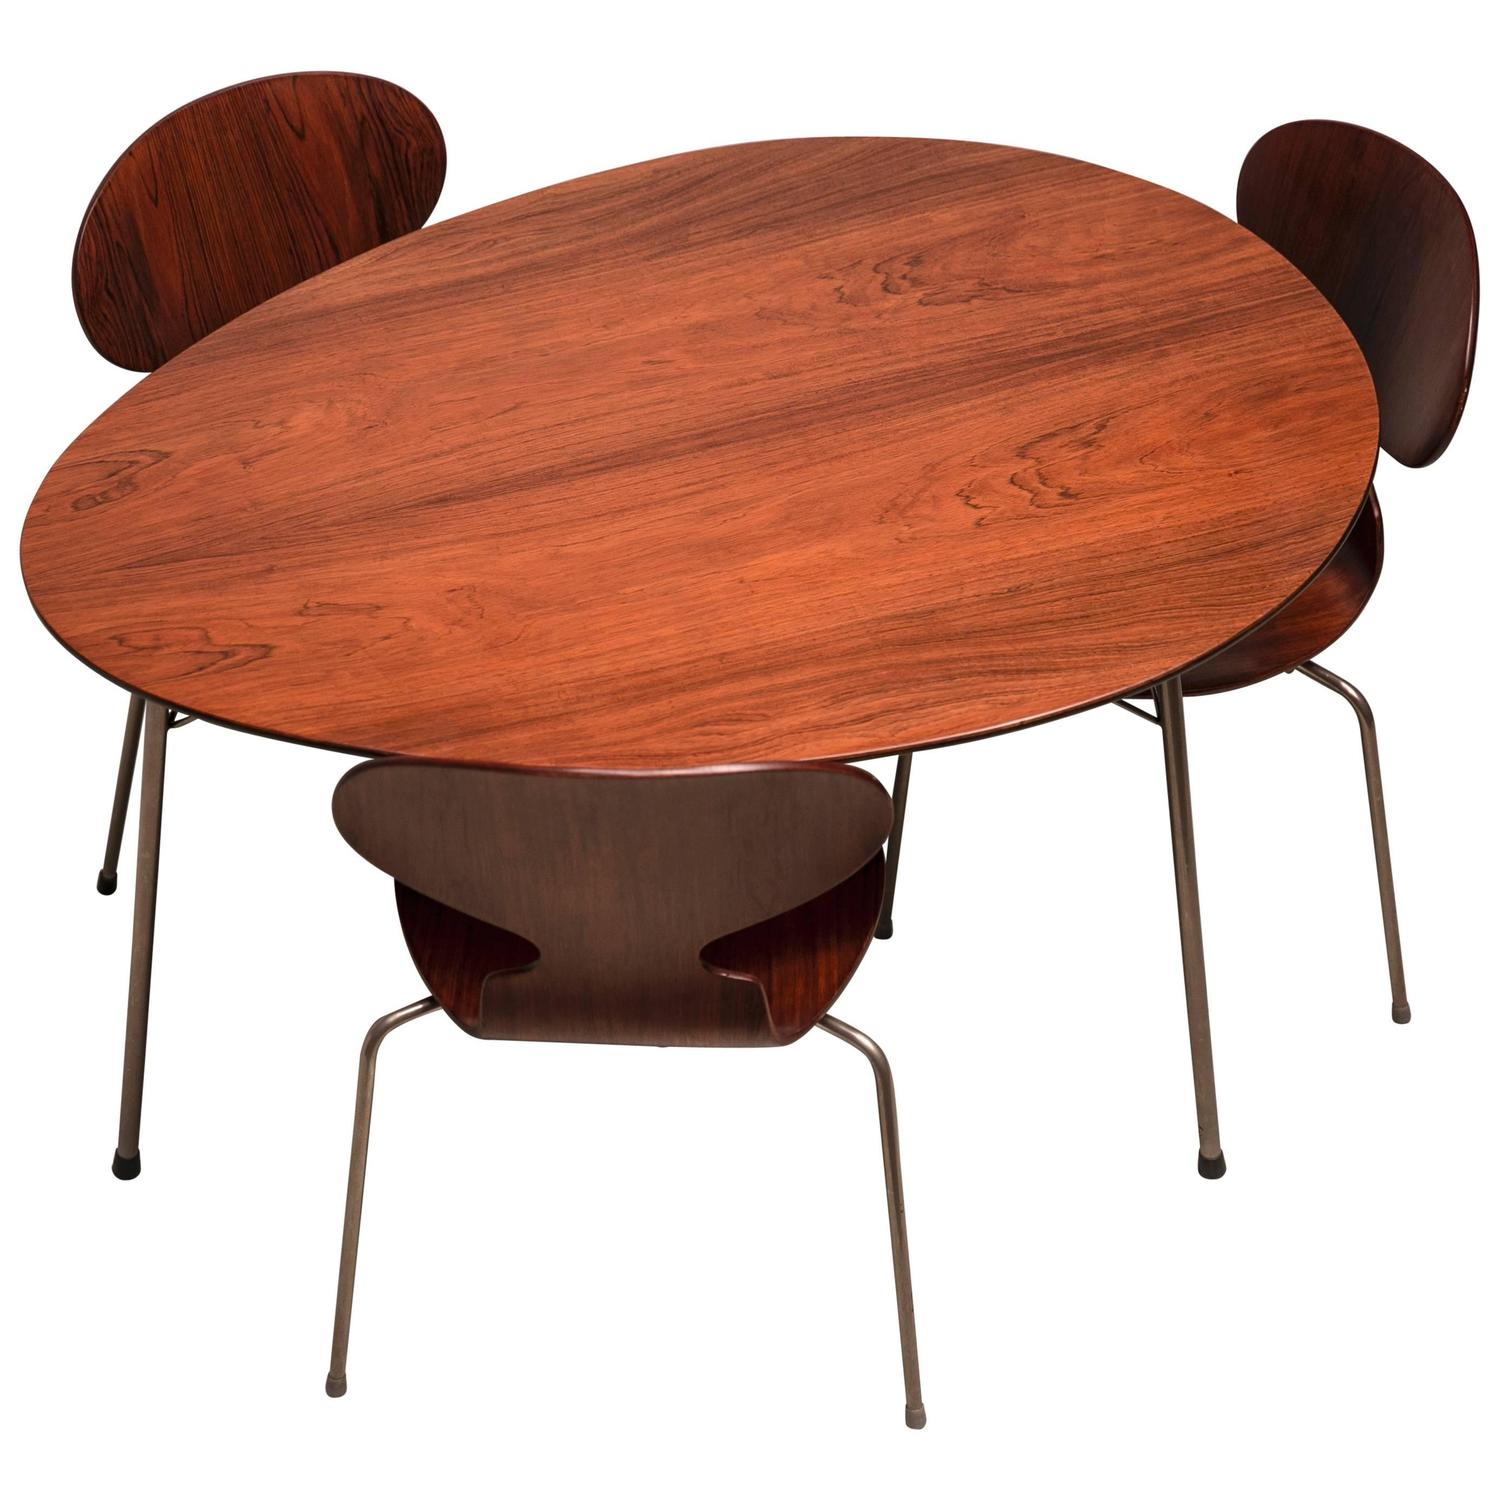 Rare First Generation Egg Chair by Arne Jacobsen For Sale at 1stdibs